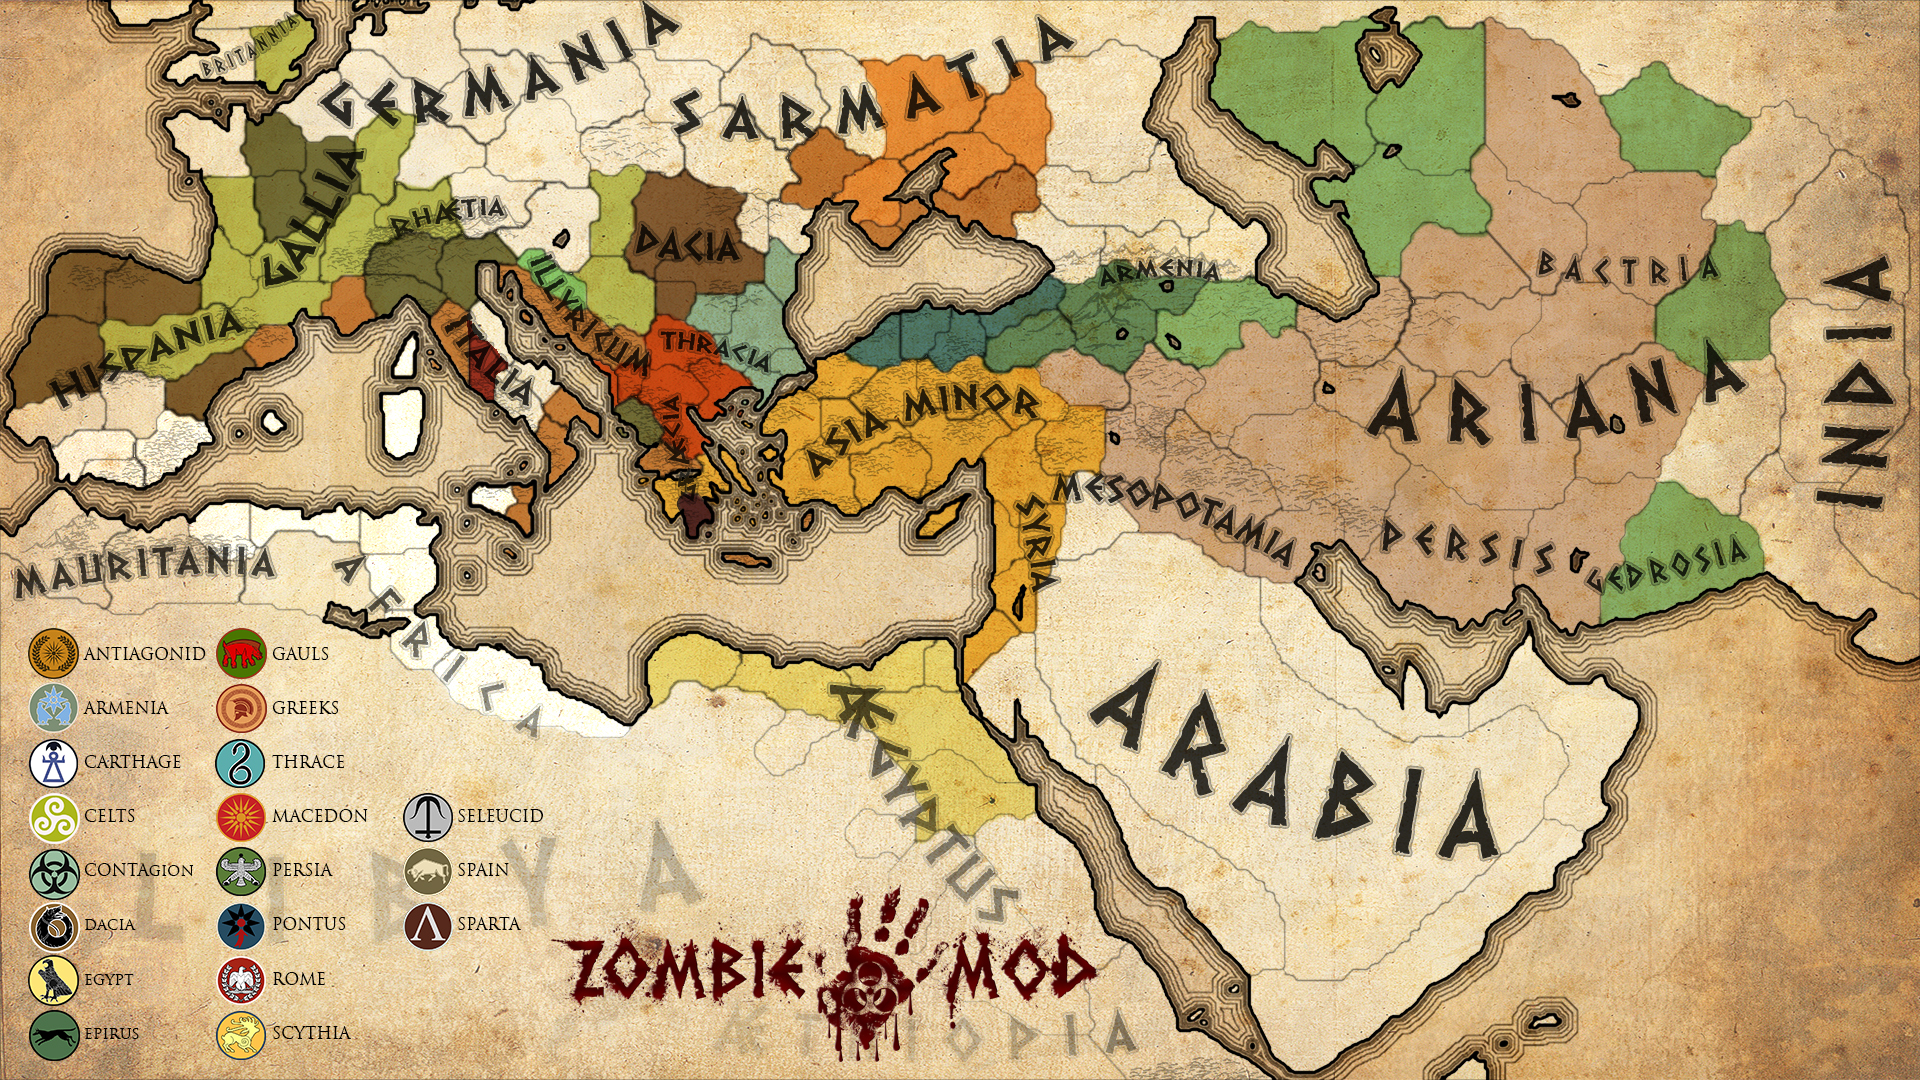 Rome total war zombie mod page 8 thread rome total war zombie mod publicscrutiny Image collections